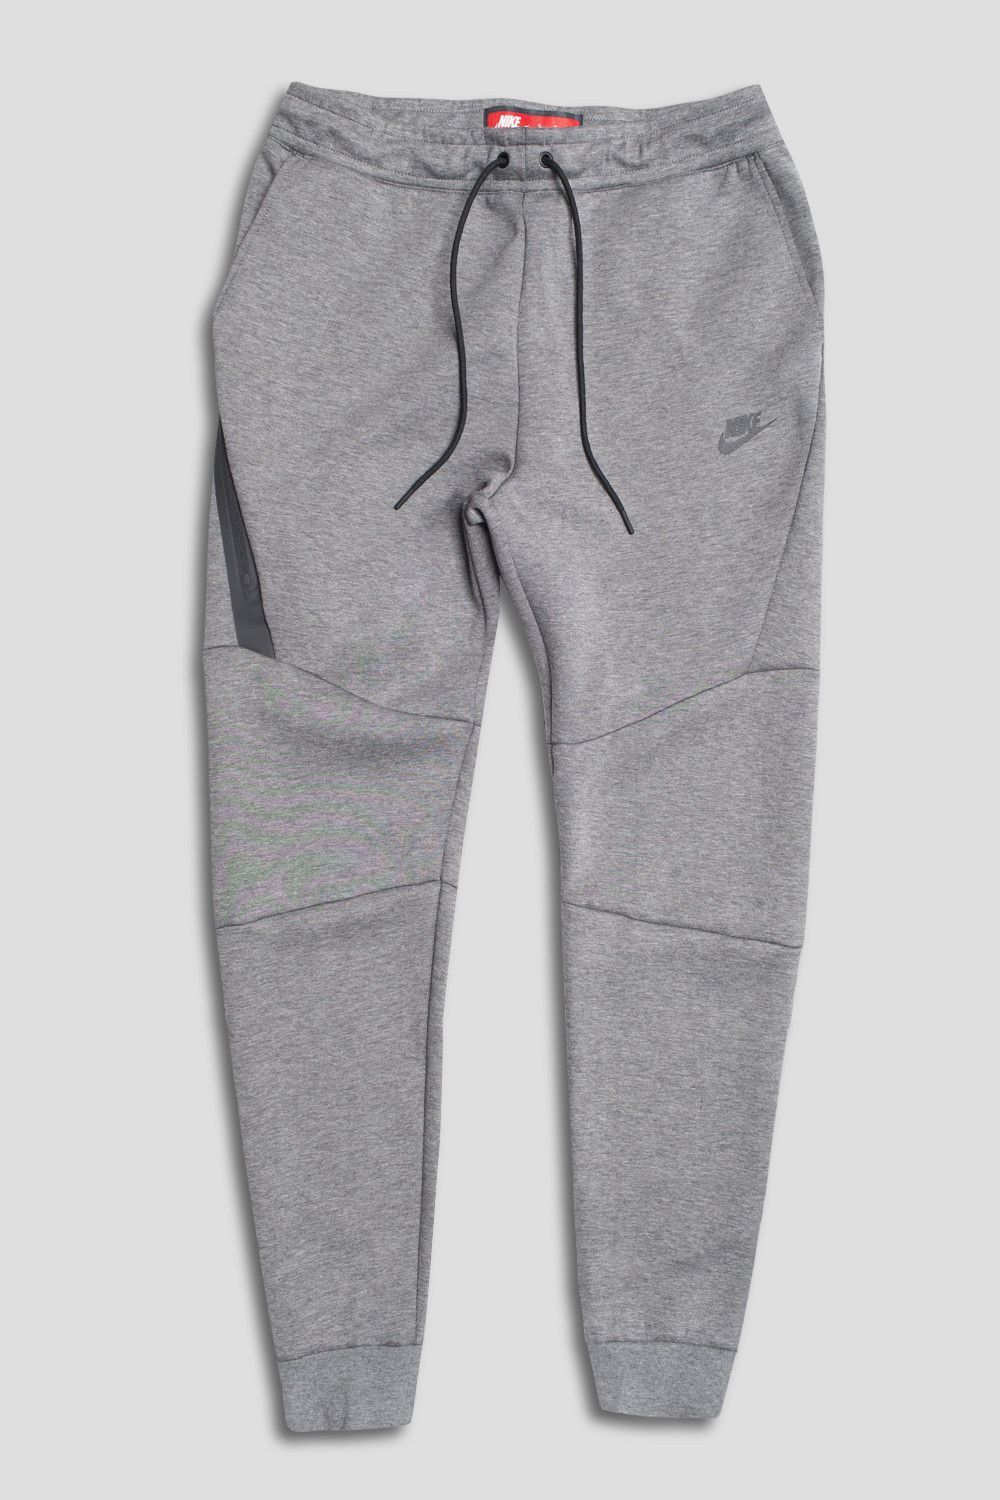 9d0fd4dfe95c The Nike Sportswear Tech Fleece Men s Joggers give you all day comfort in a…